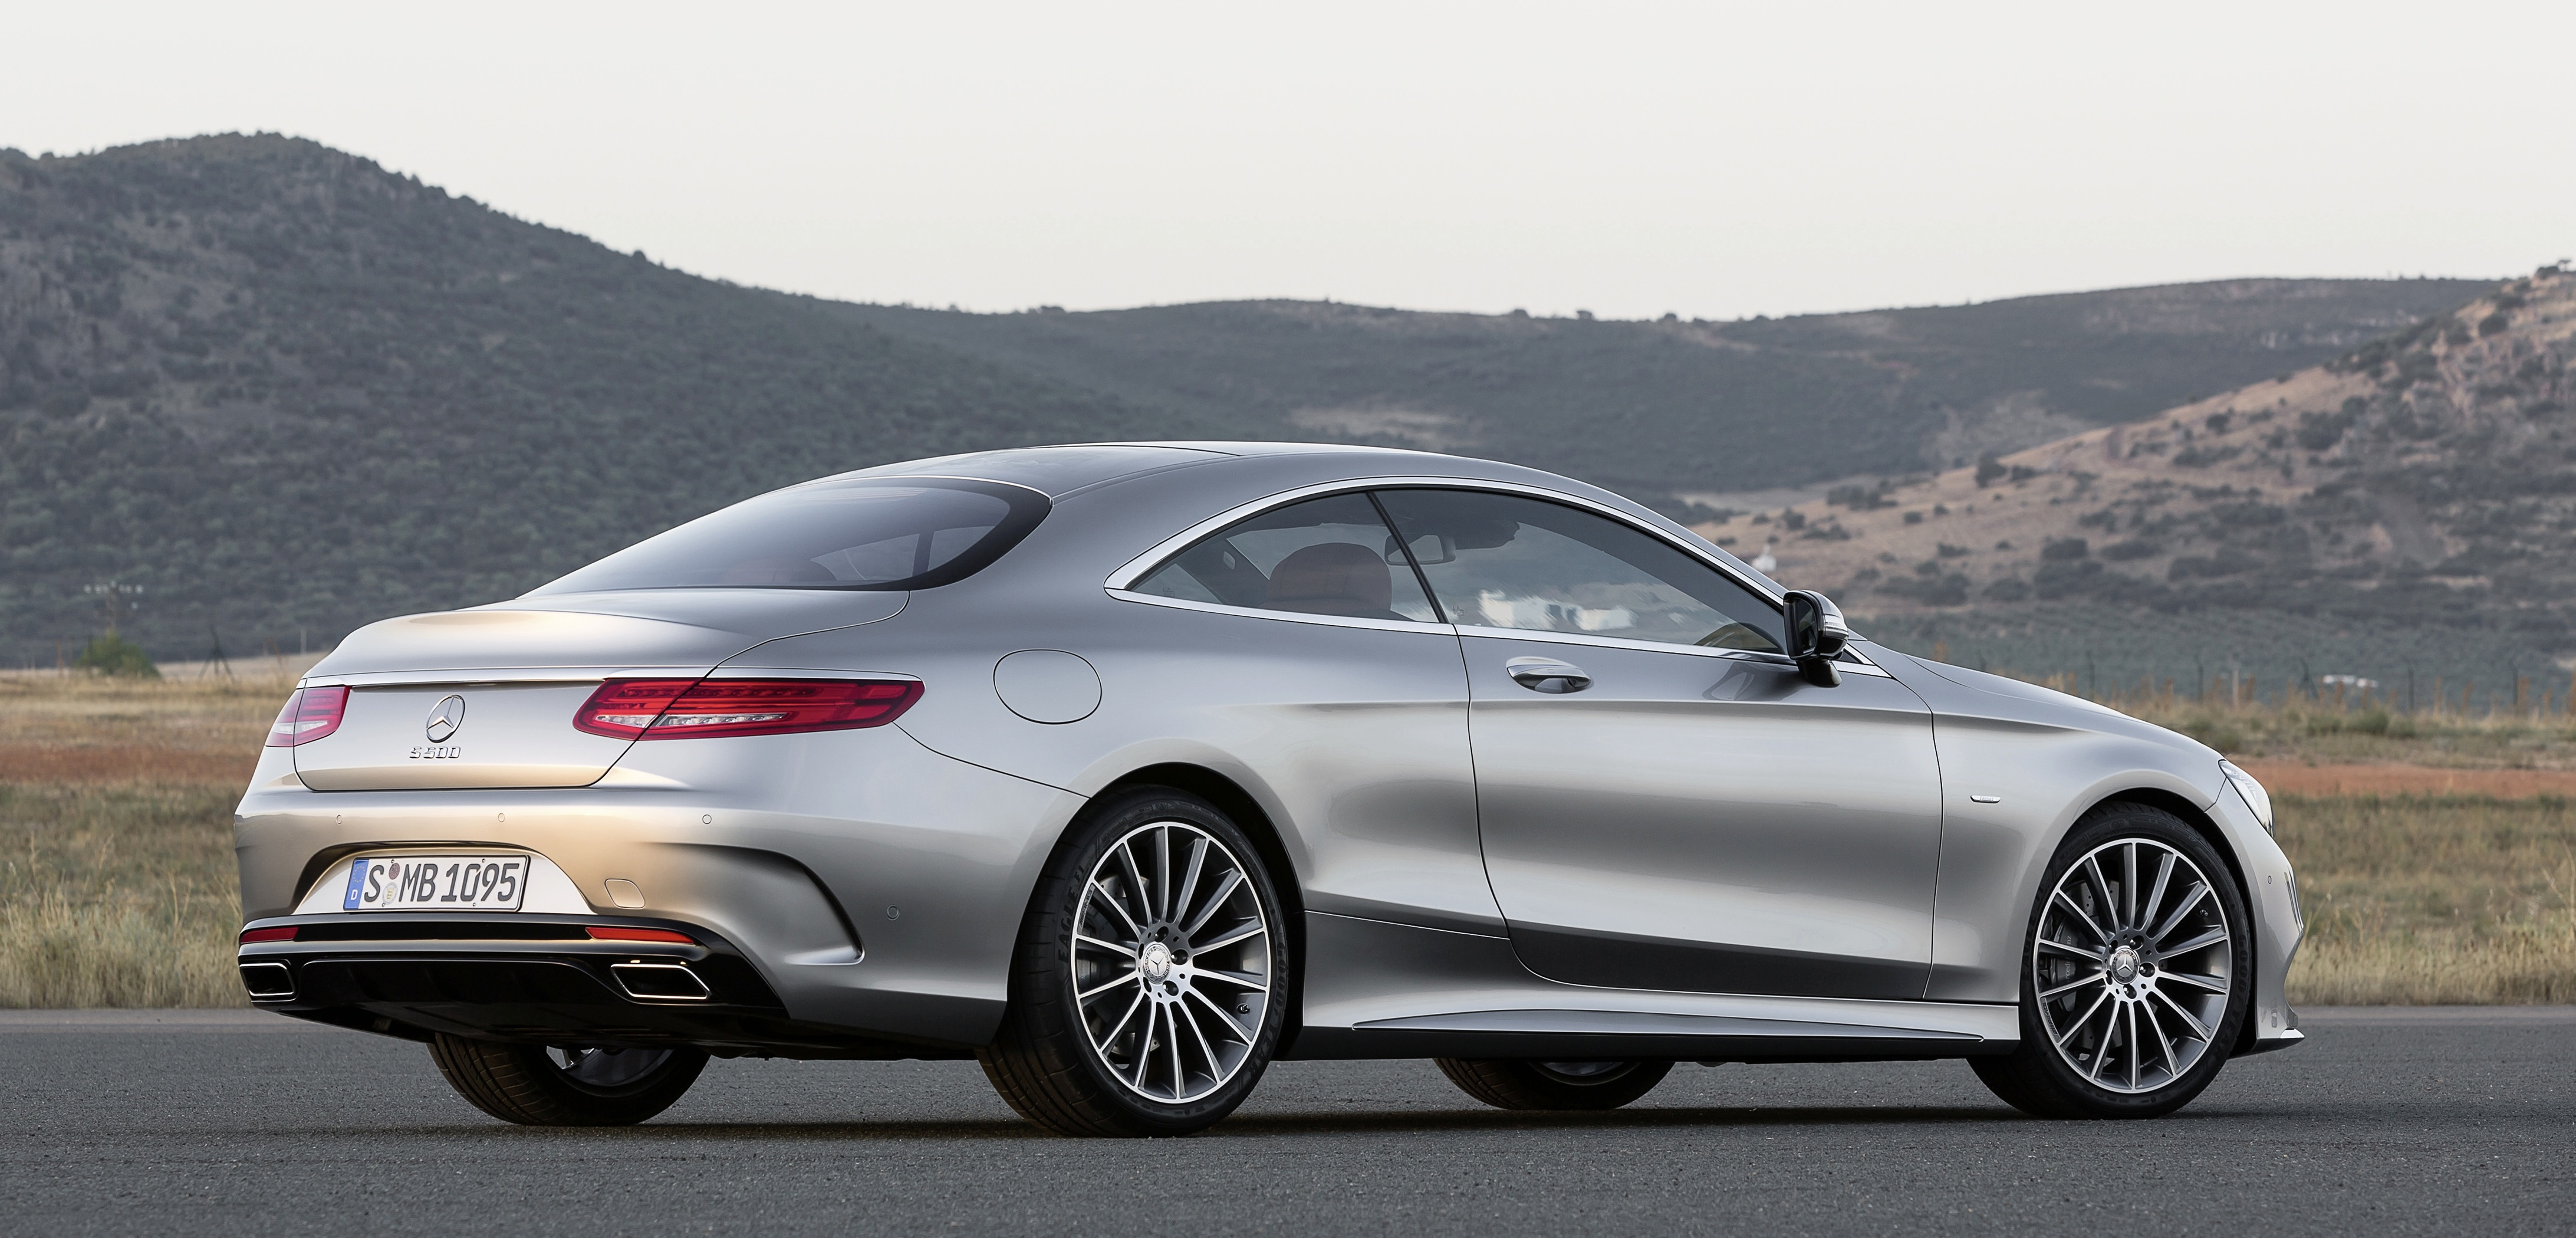 Mercedes C Coupe >> Mercedes-Benz S-Class Coupe – crystal clear details Image 227817